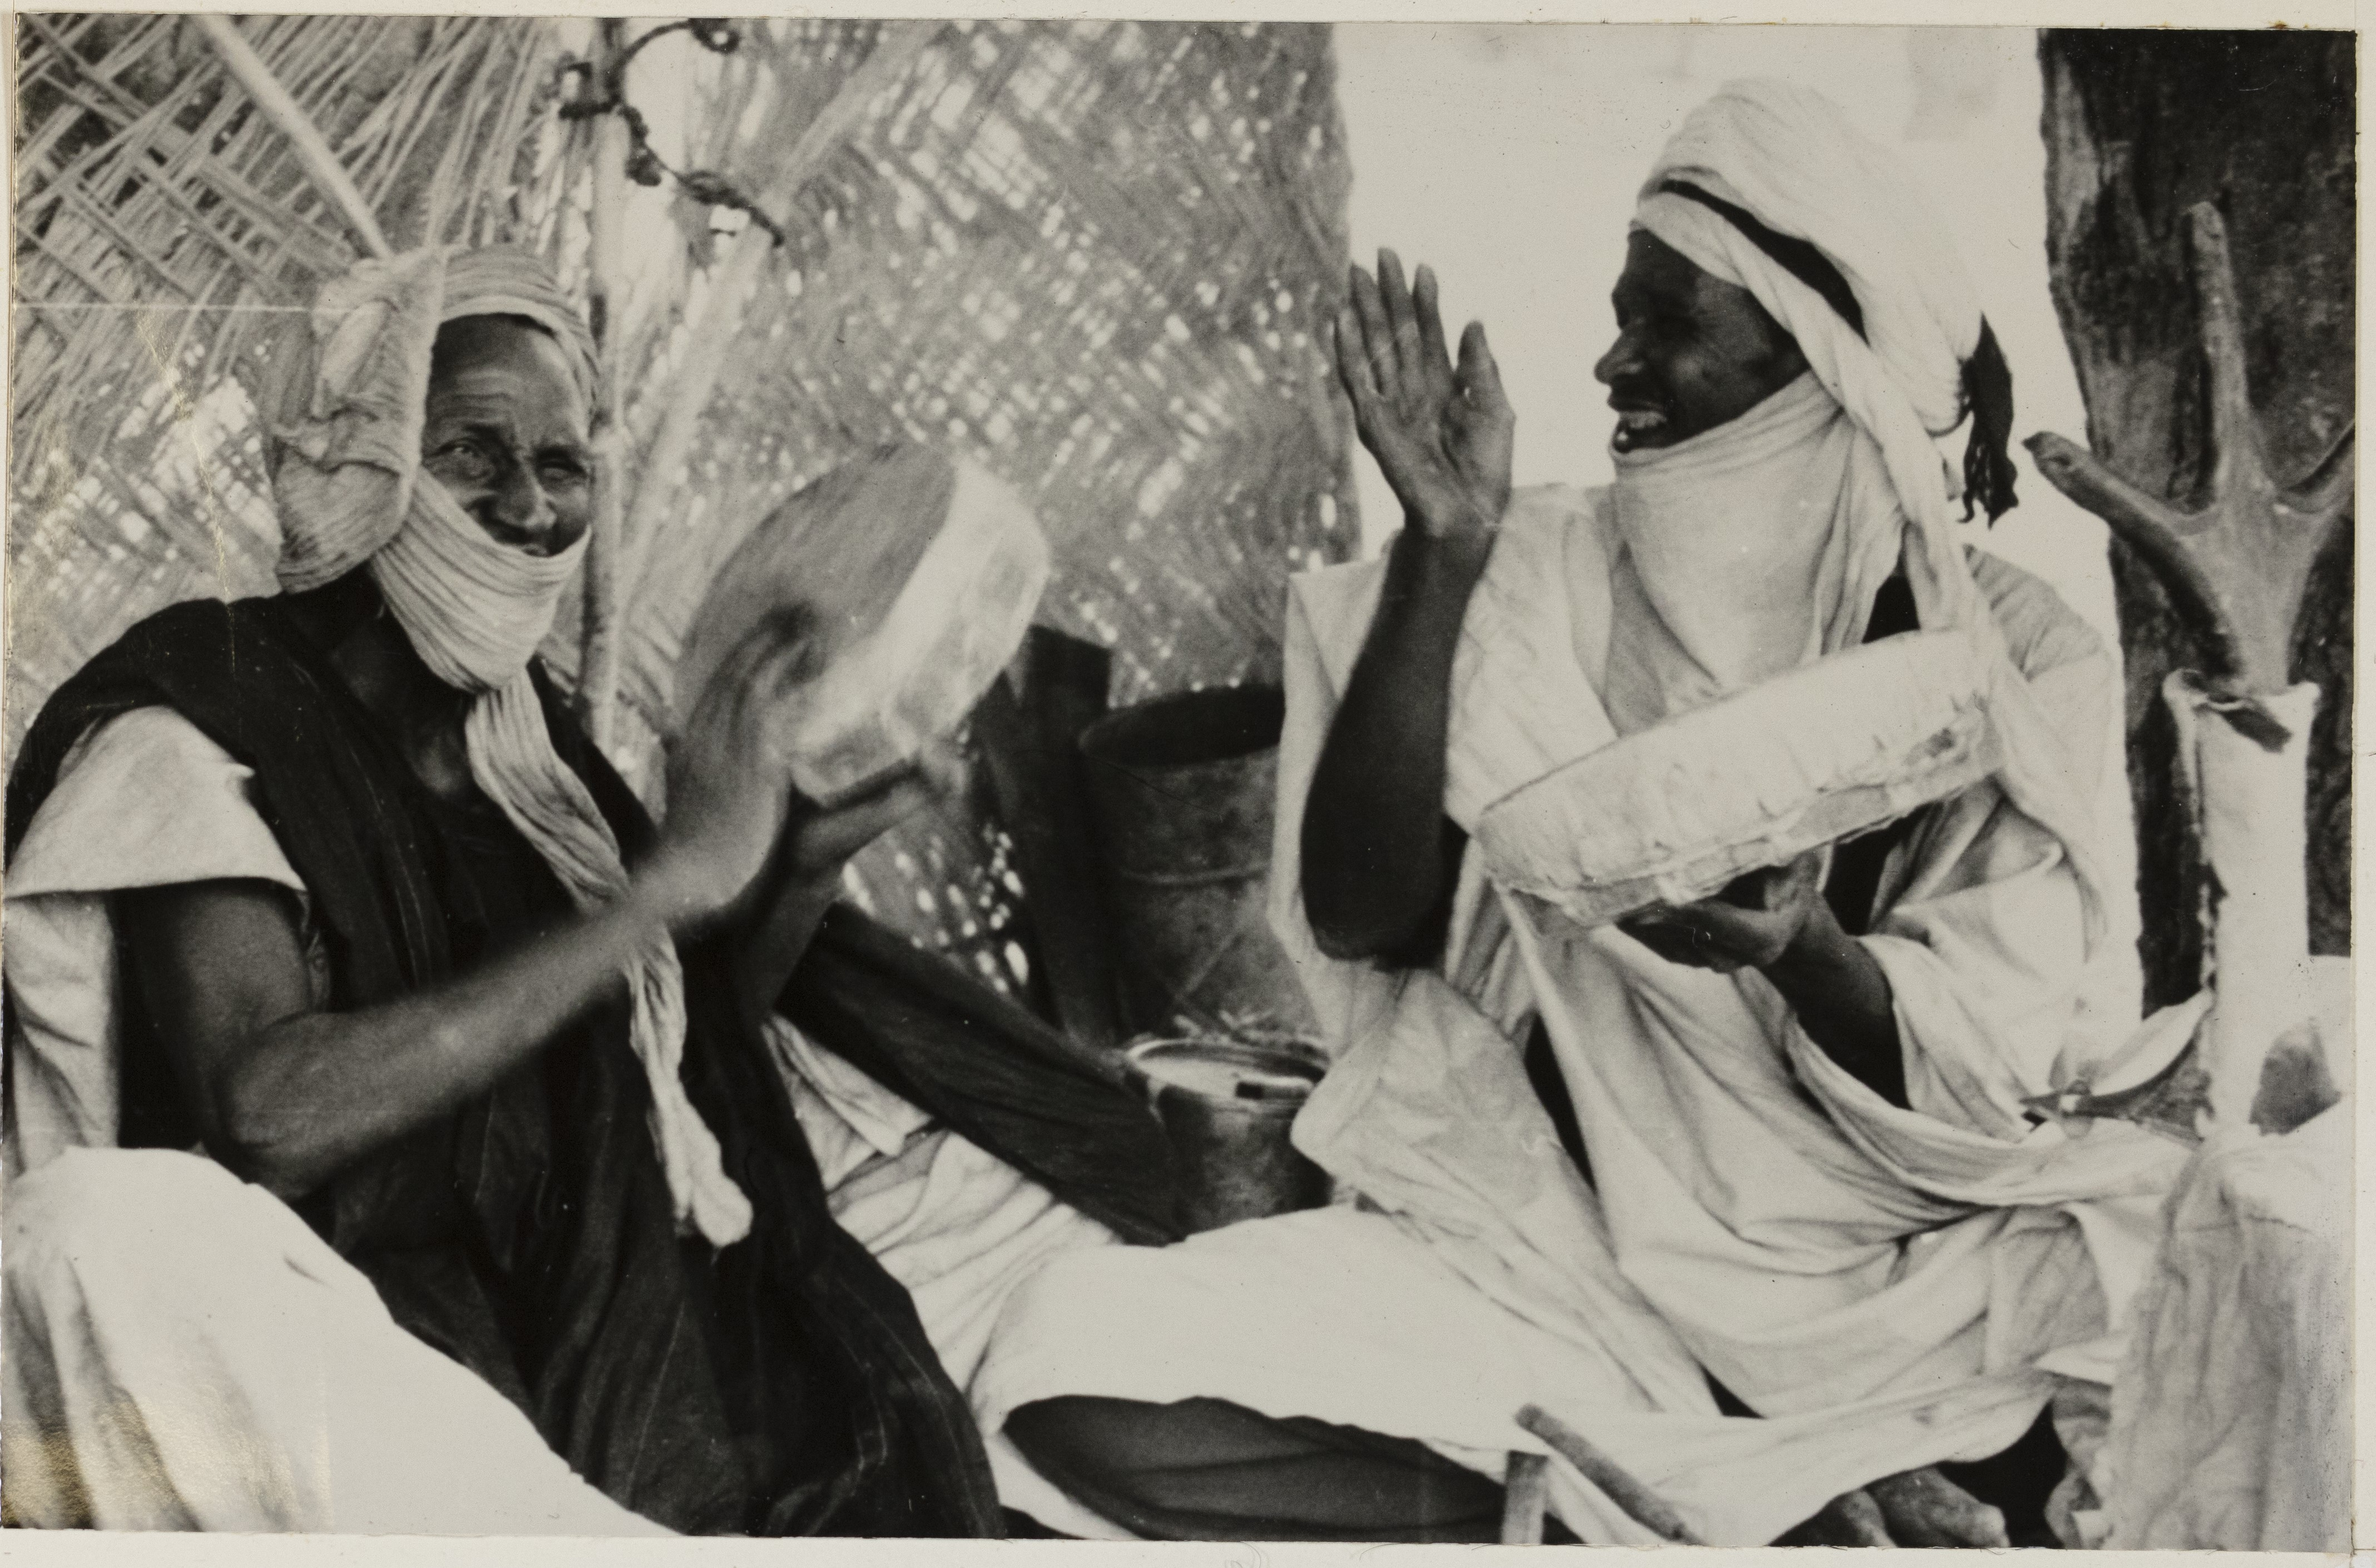 Tuareg_men_playing_tendi__photo_courtesy_of_the_Moses_and_Frances_Asch_Collection